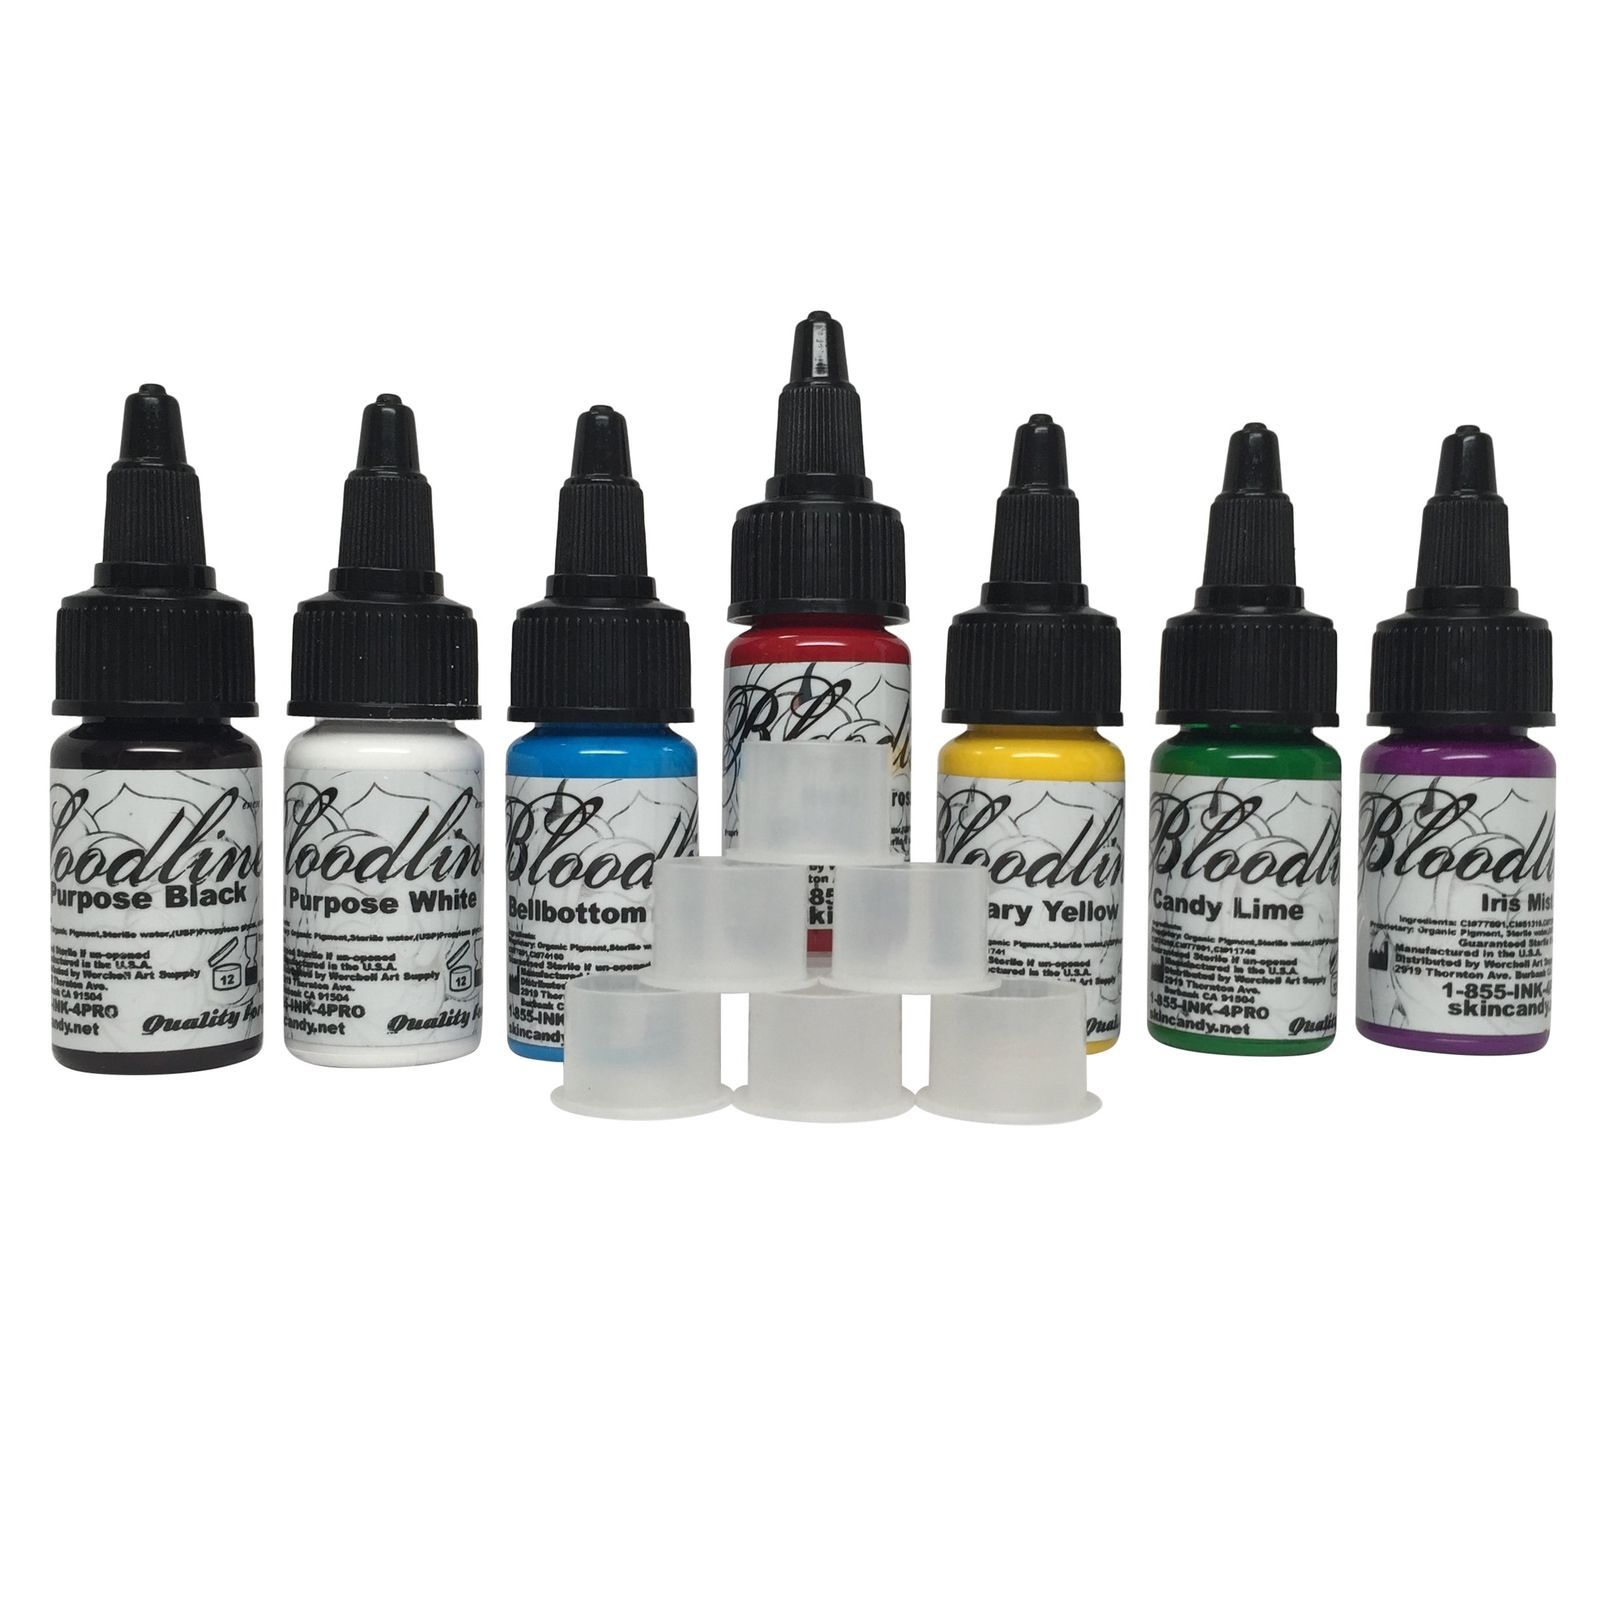 SET OF 7 BLOODLINE TATTOO INK. This is a bundle that